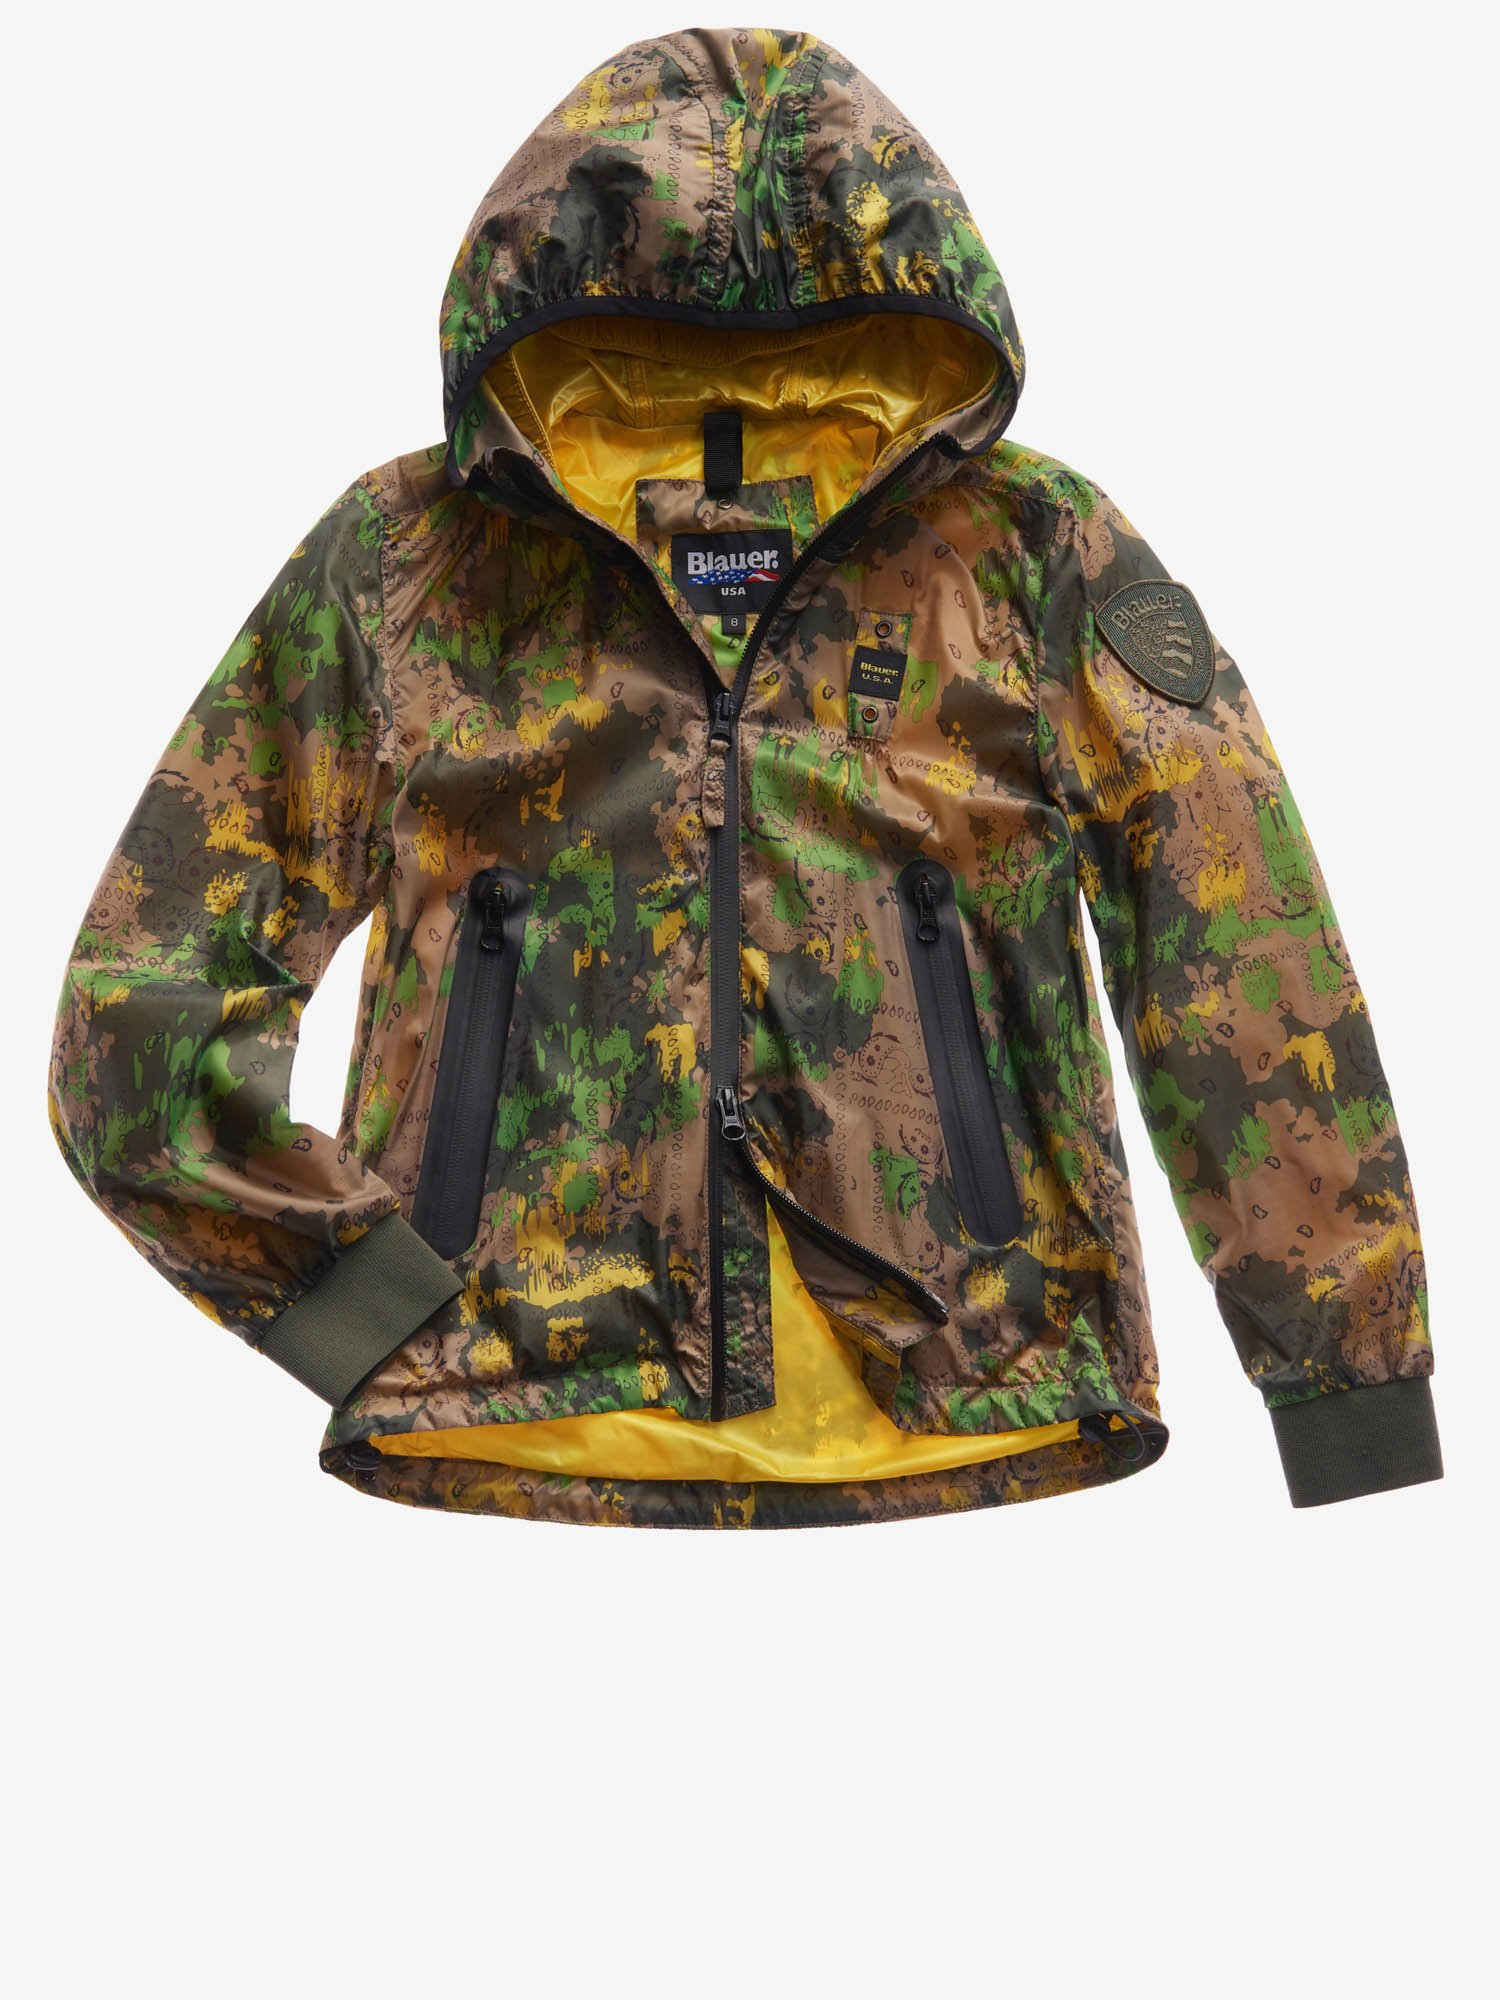 JUNIOR LINED JACKET WITH DOUBLE HOOD - Blauer